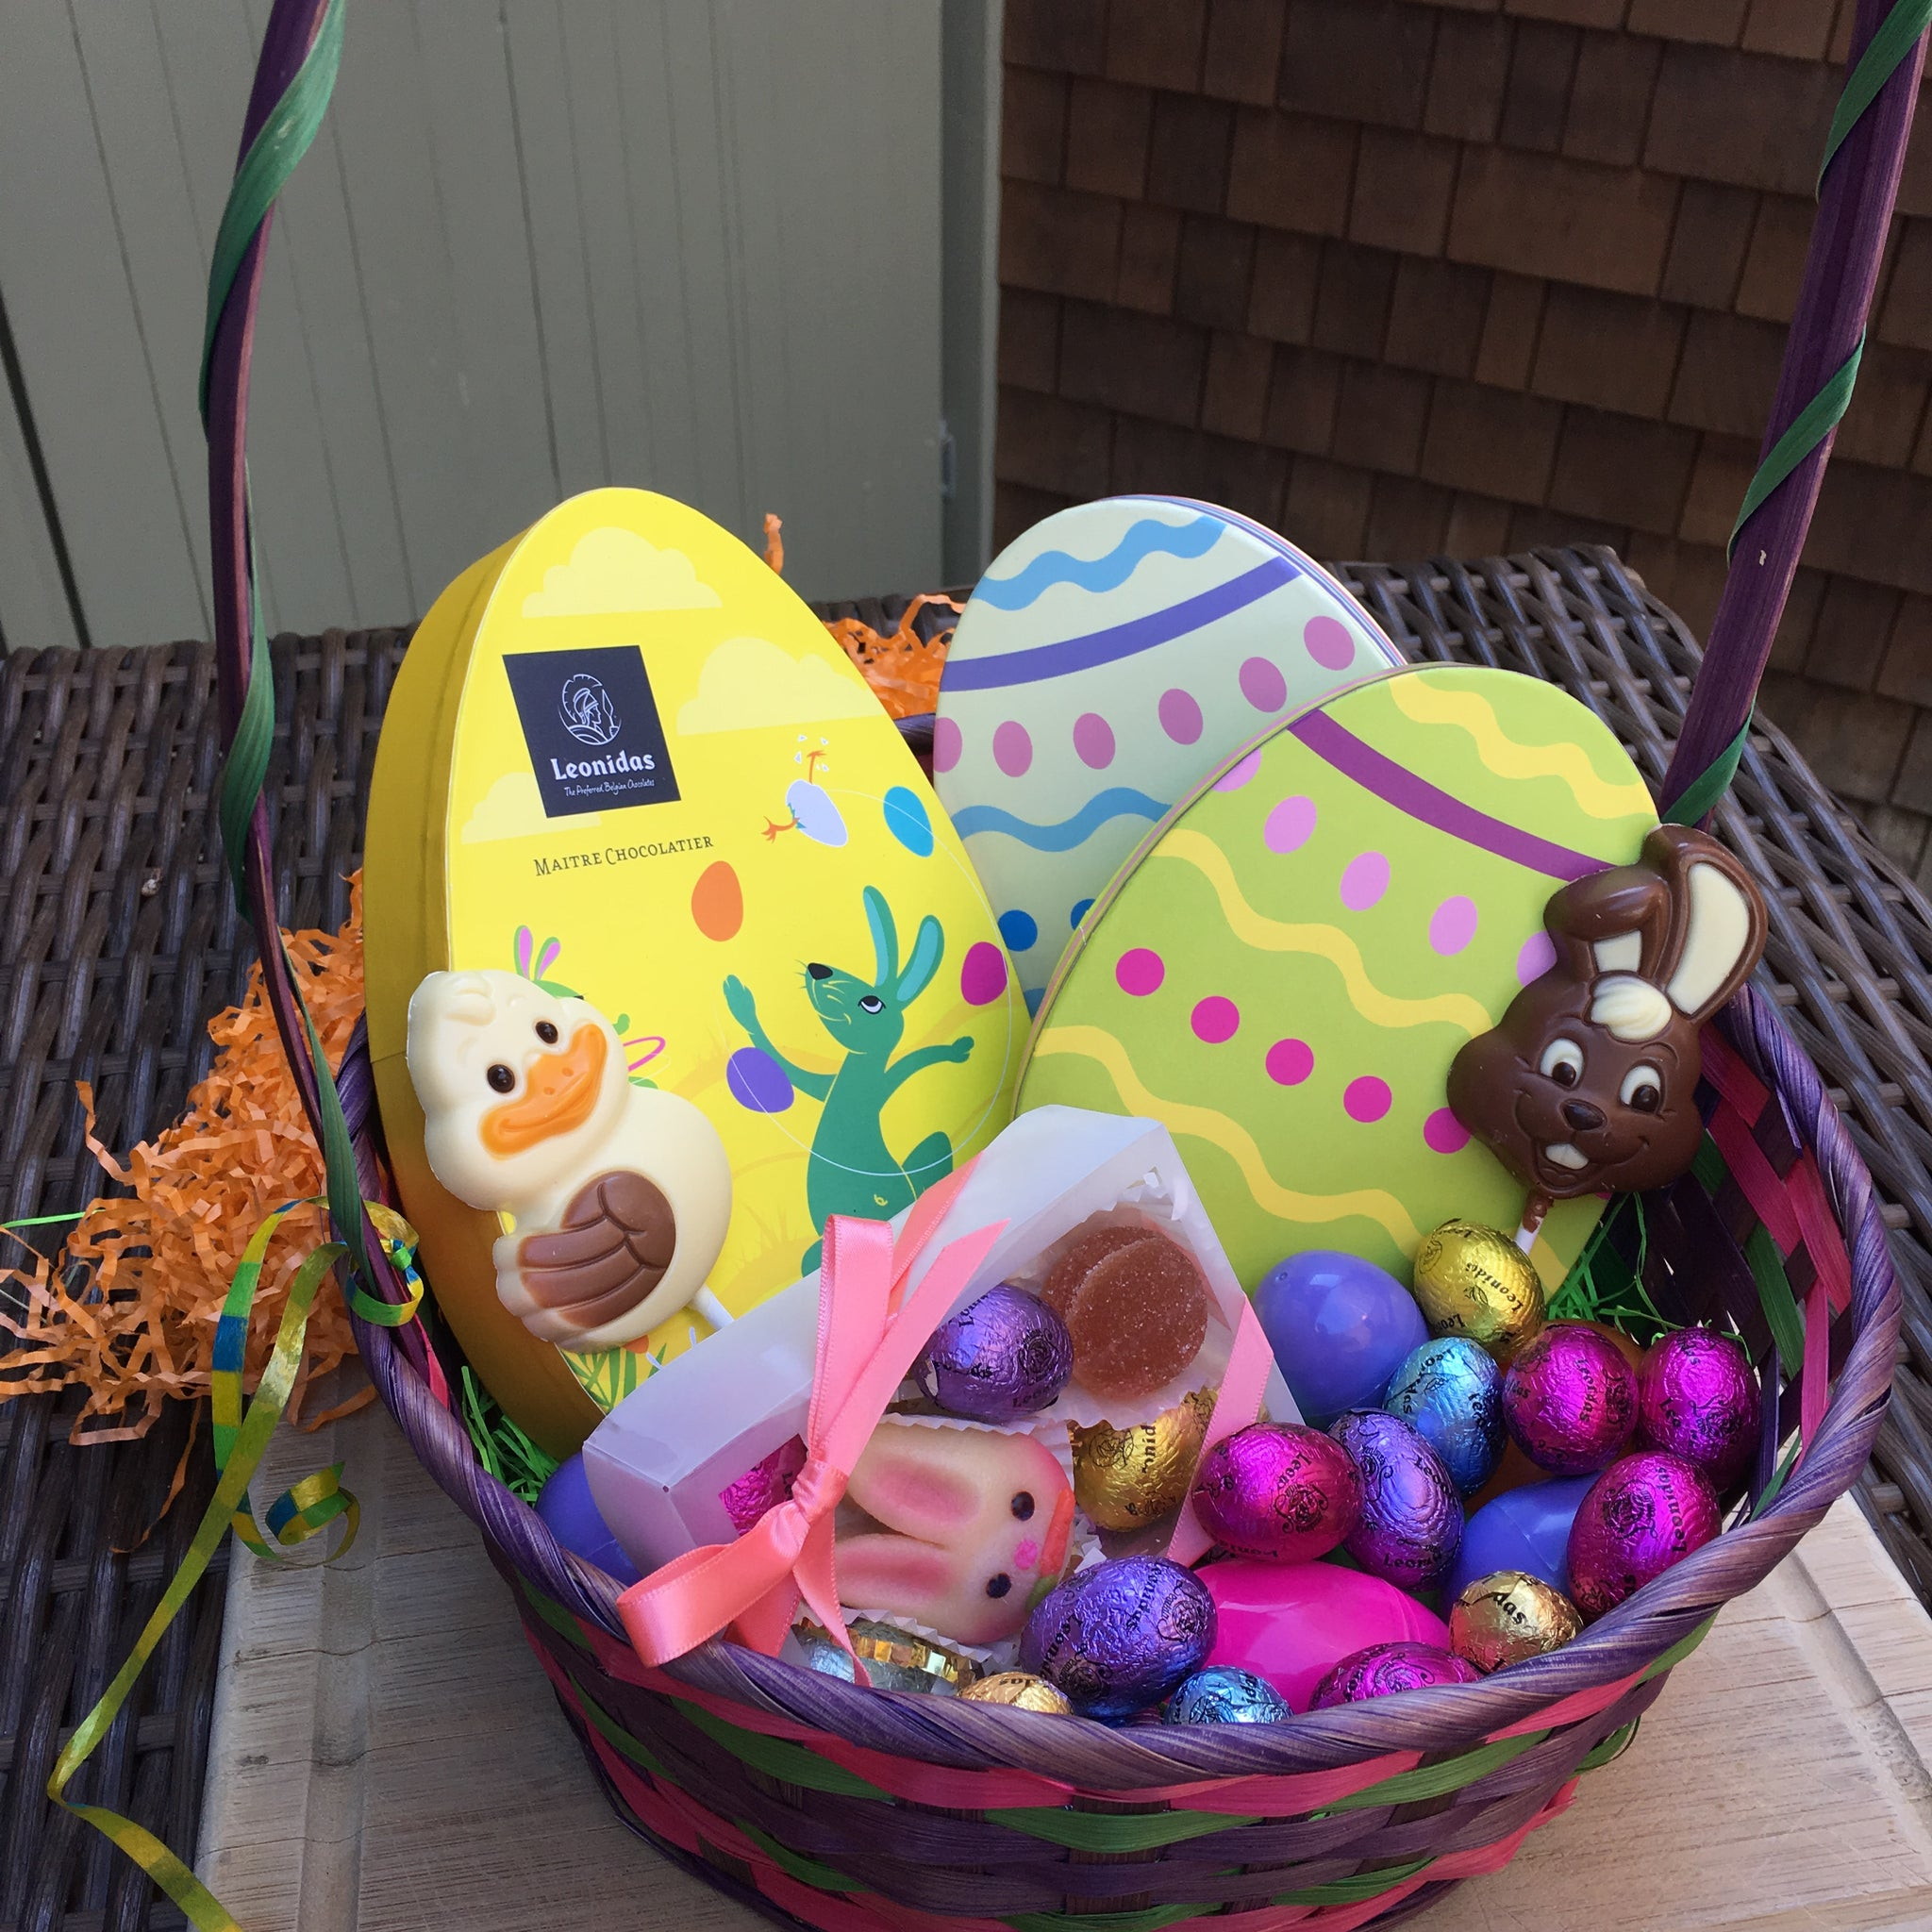 Leonidas Easter themed basket